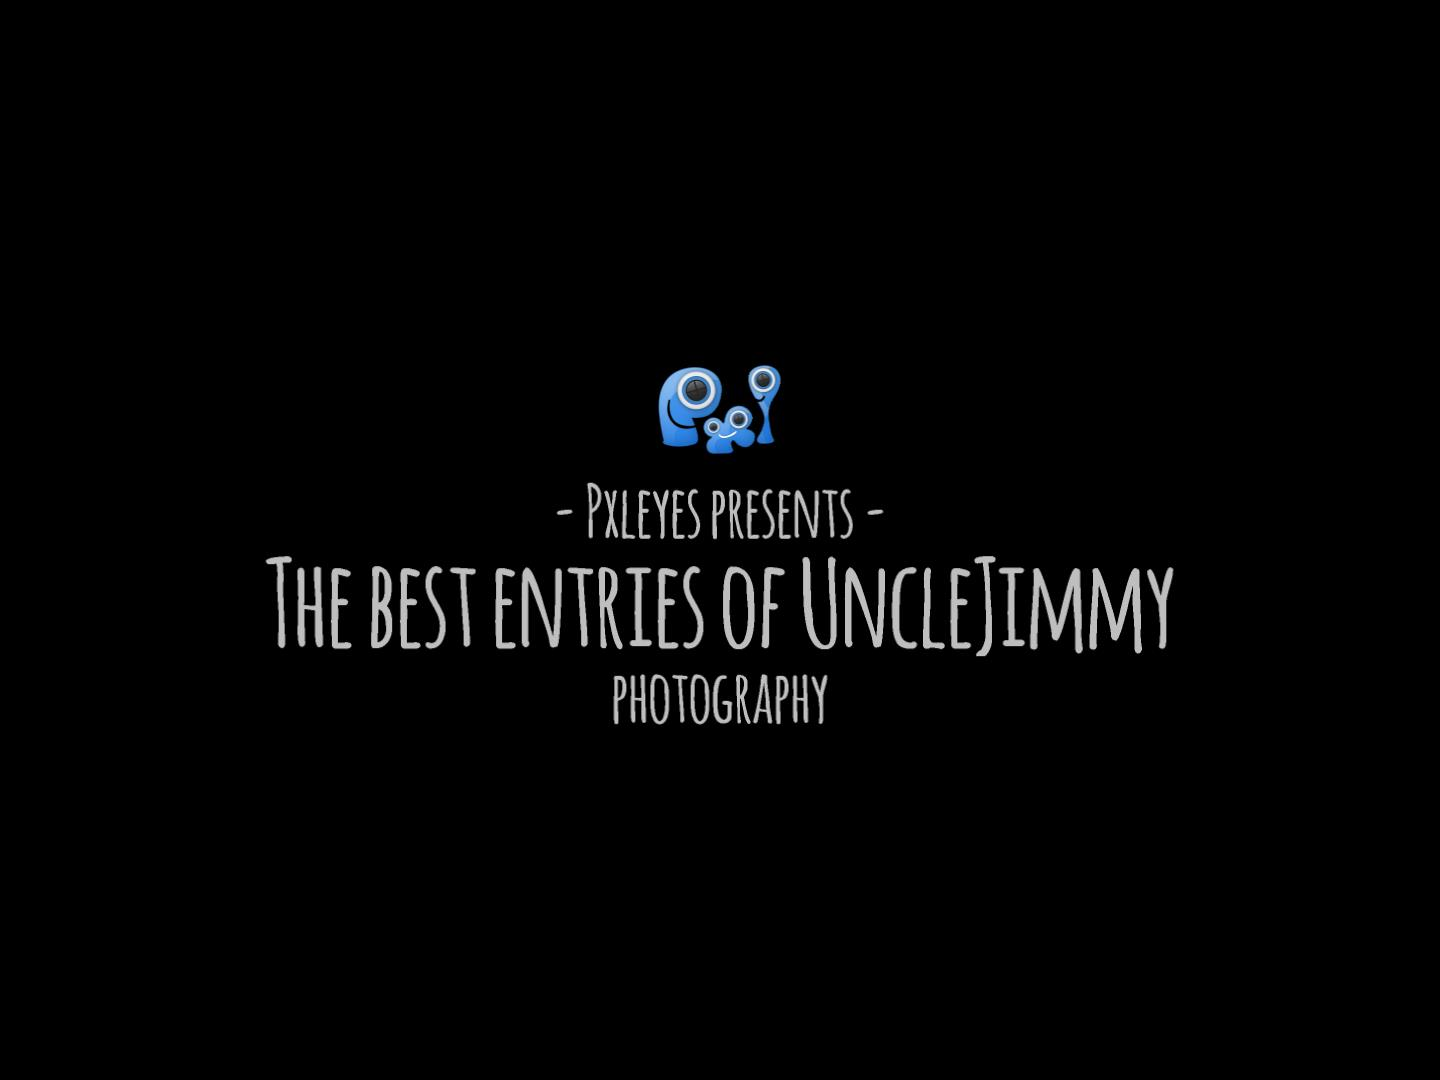 The best entries by UncleJimmy